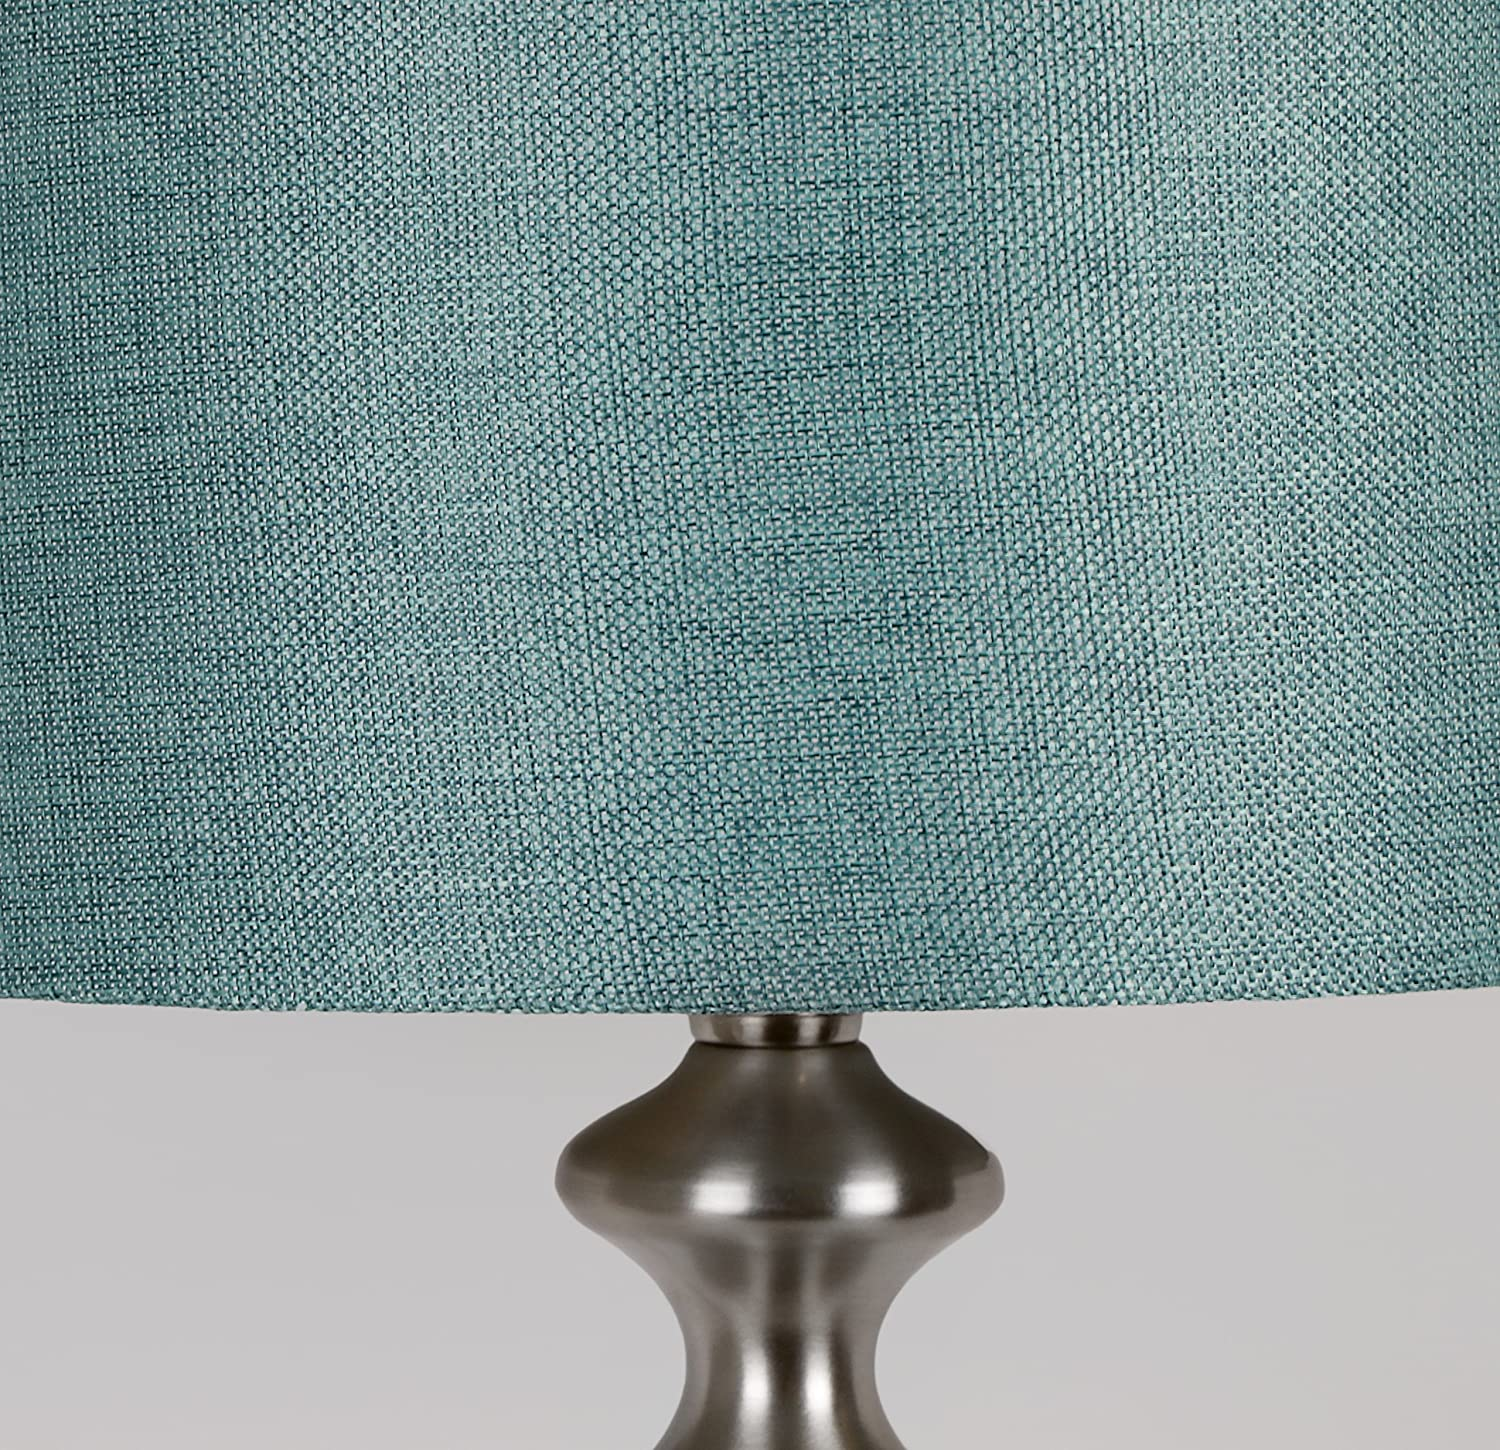 Grandview gallery st90215ht w 265 table lamps set of 2 grandview gallery st90215ht w 265 table lamps set of 2 turquoise shade amazon geotapseo Choice Image